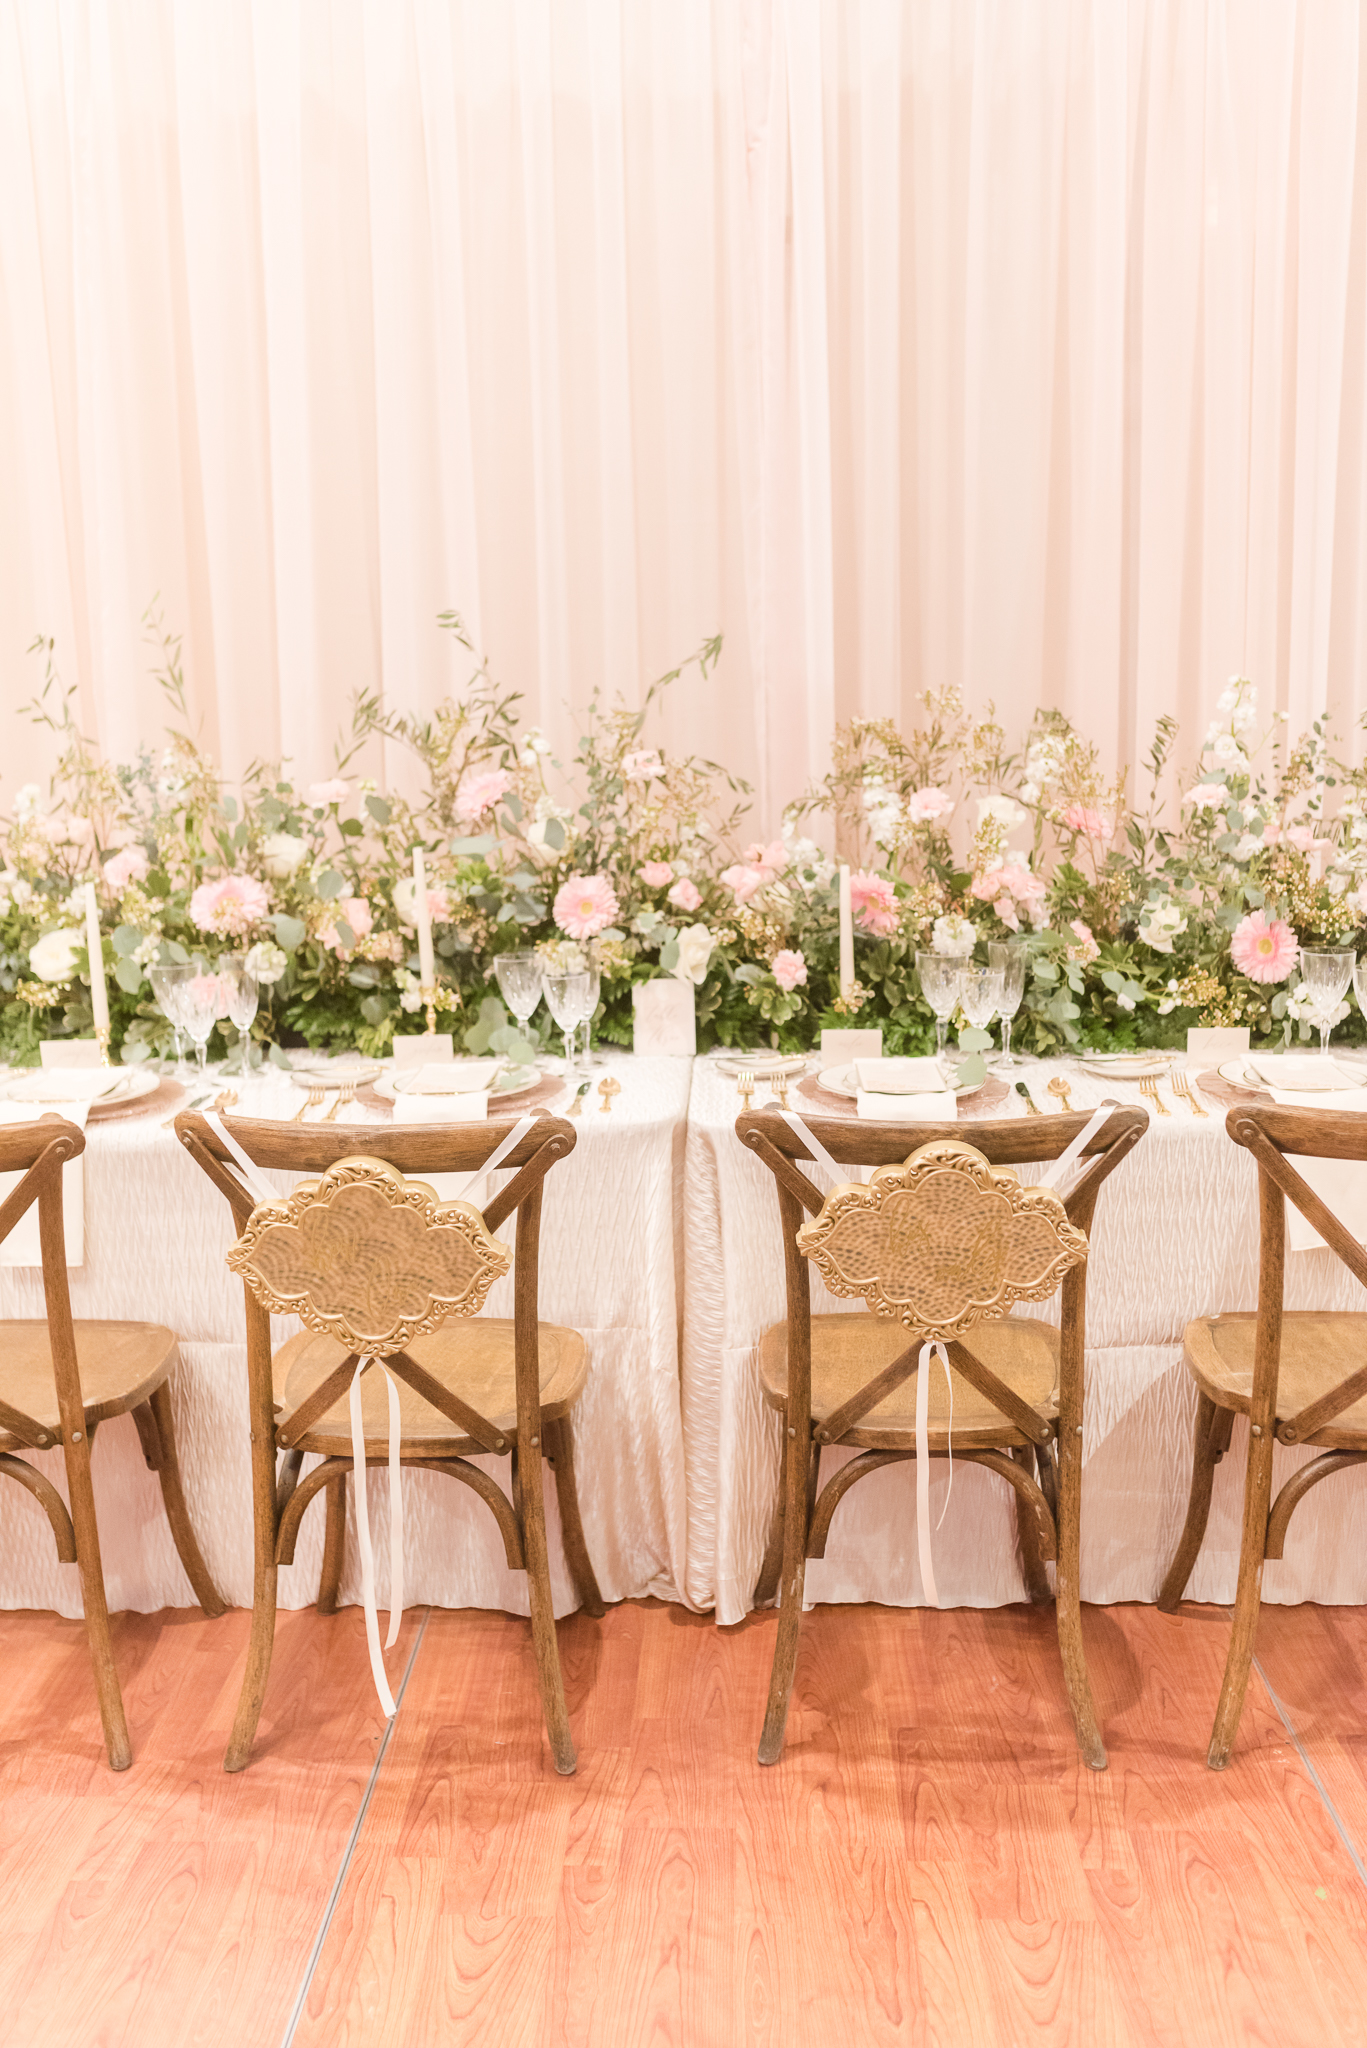 chair covers and linens indianapolis ergonomic for home office a classic party rental at the monthly bridal show rakoteet photography indiana wedding photographer